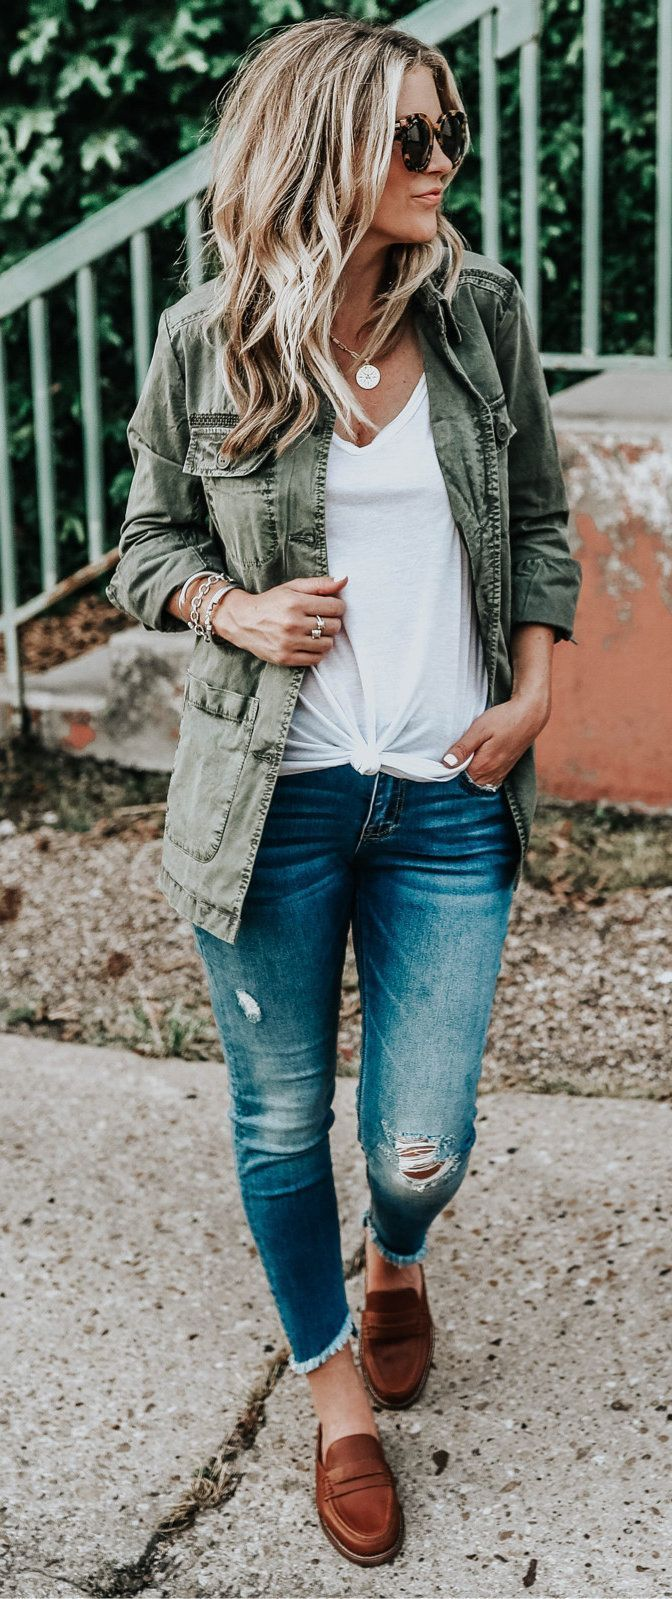 spring outfits with loafers 50+ best outfits – Page 18 of 100 – collection201.co.uk Source by heidispidee #collection201couk #loafers #outfit ideas for women over 40 #Outfits #Page #Spring